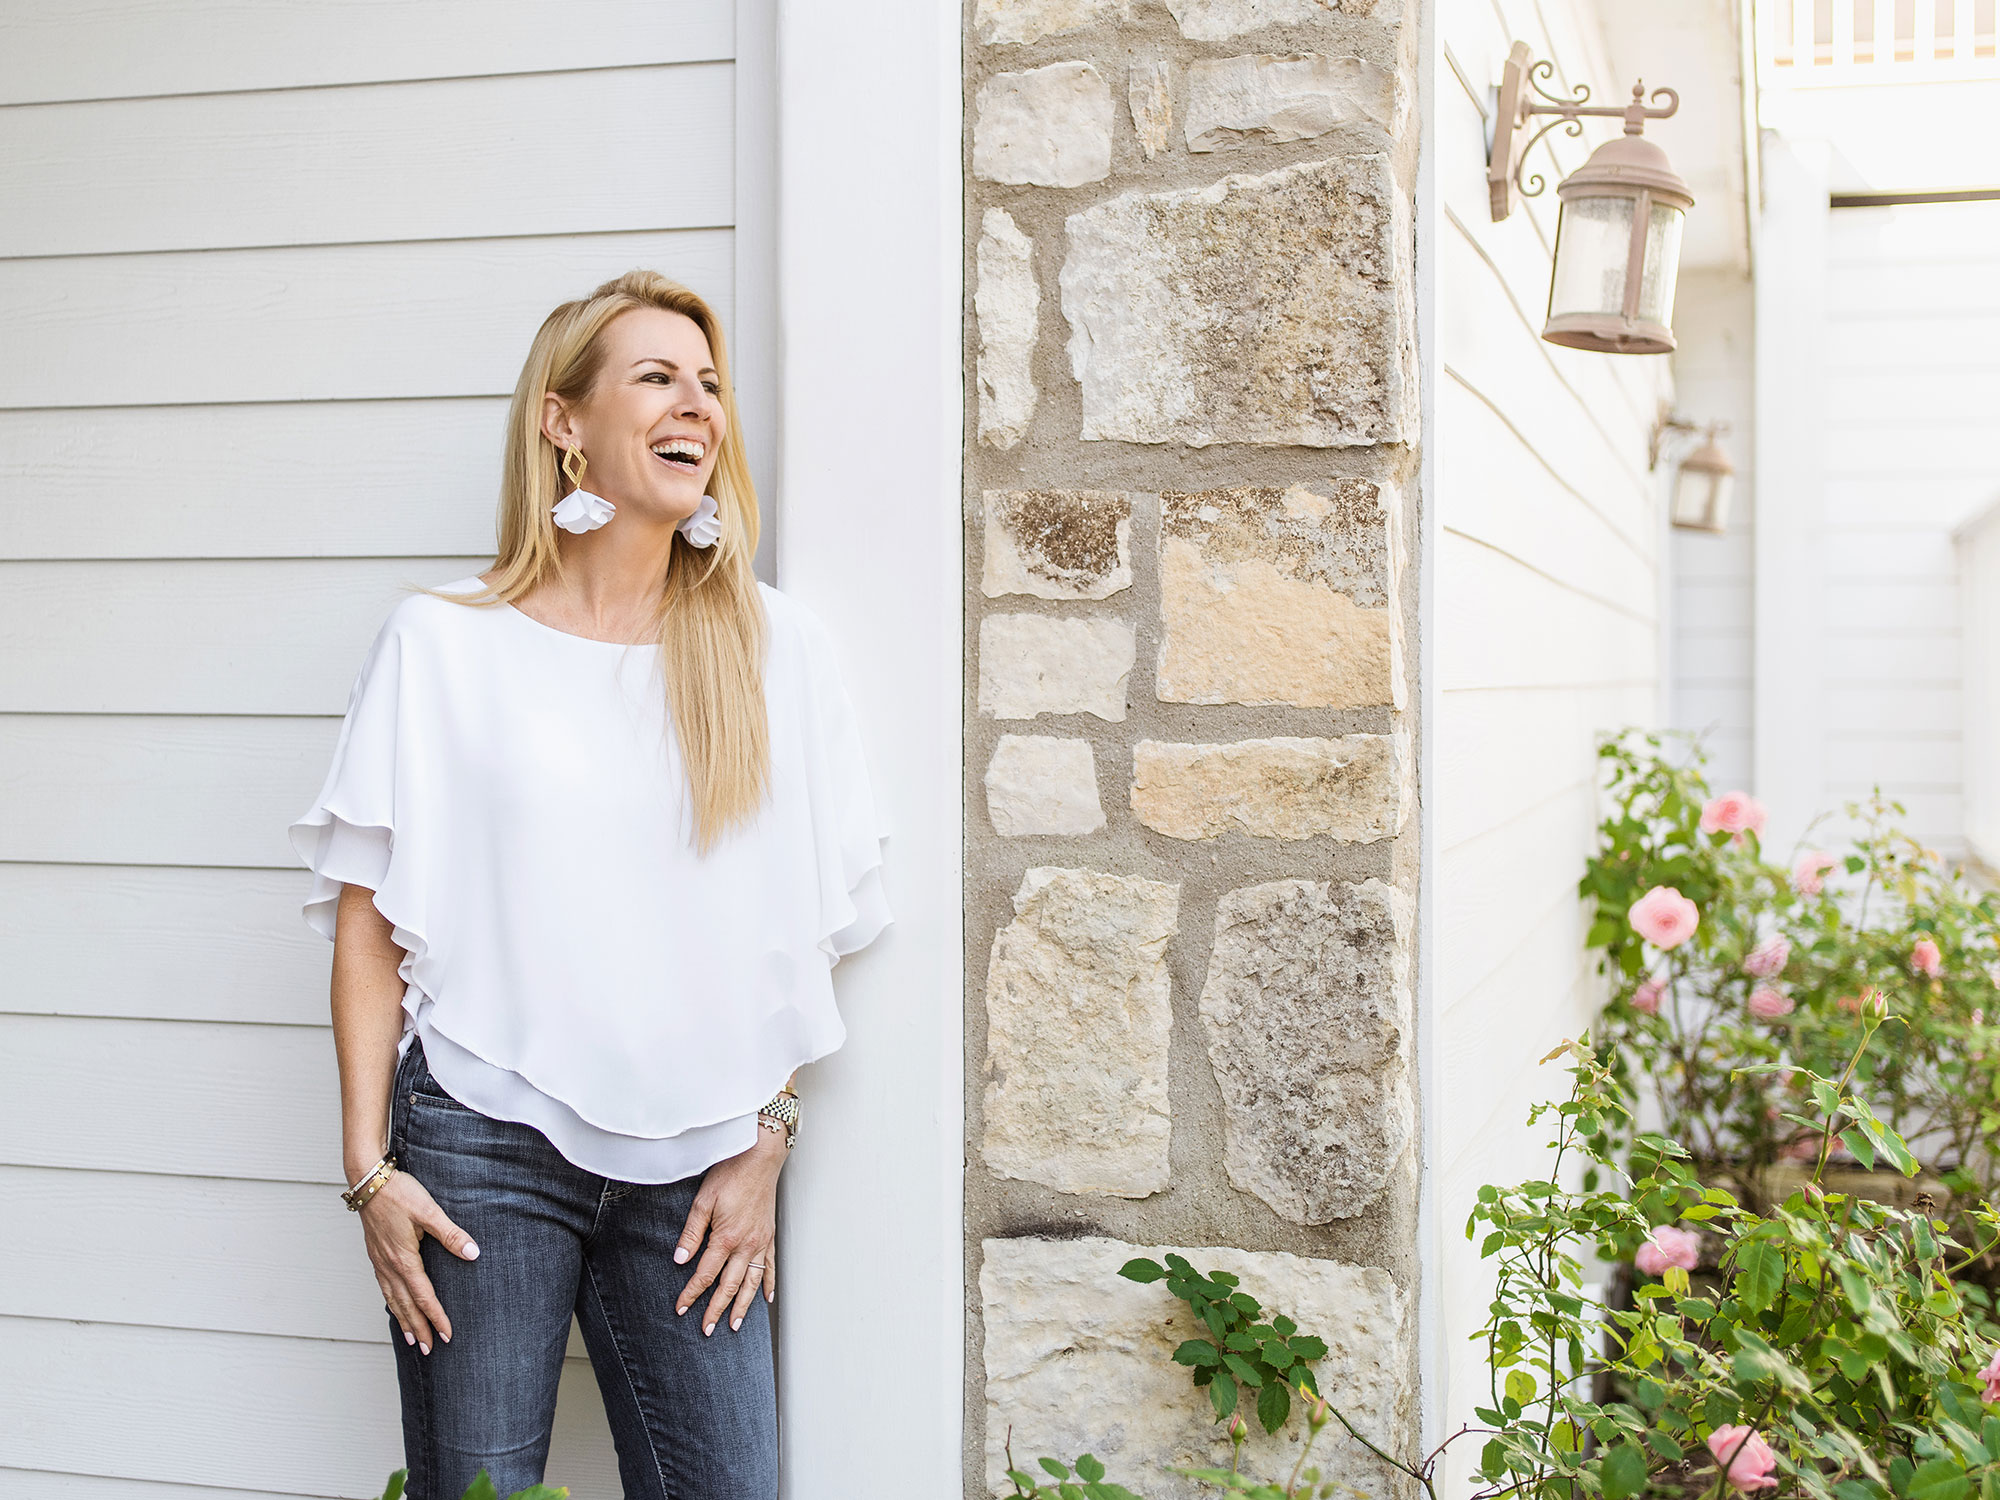 Amy Spears photographed by lifestyle portrait photographer Josh Huskin in Boerne, TX.